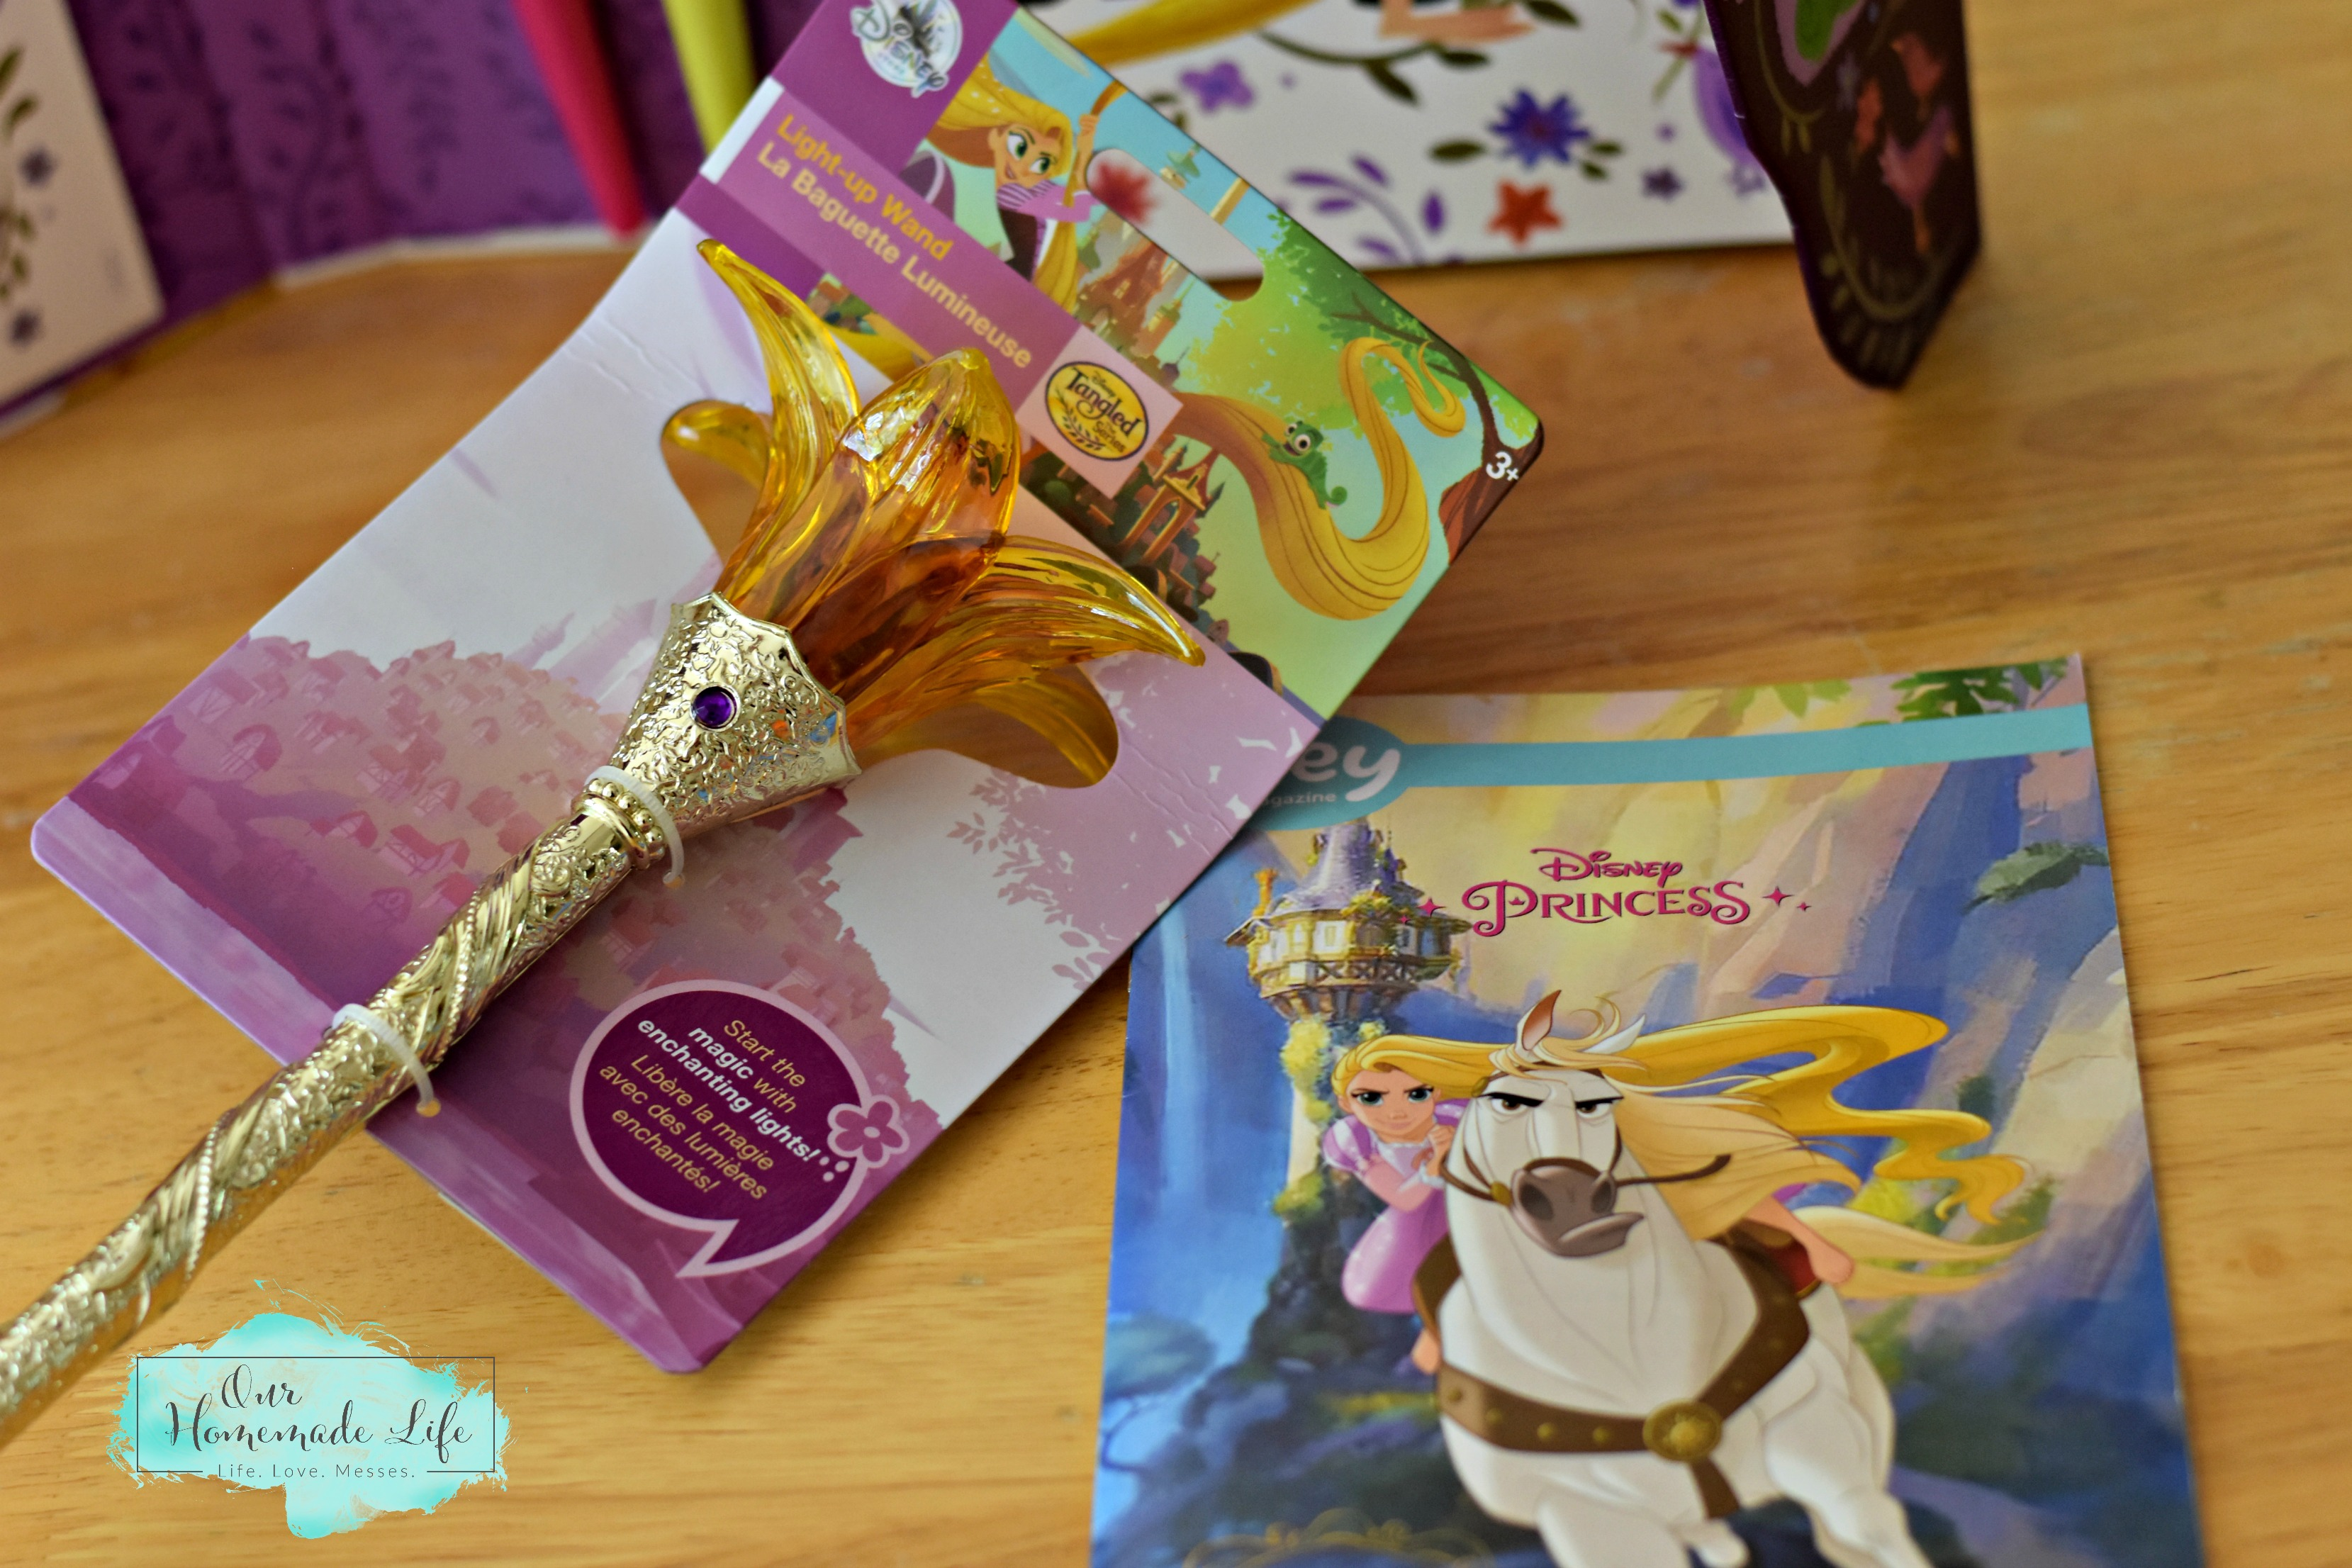 Disney Princess Pley Box Rapunzel Light Up Wand